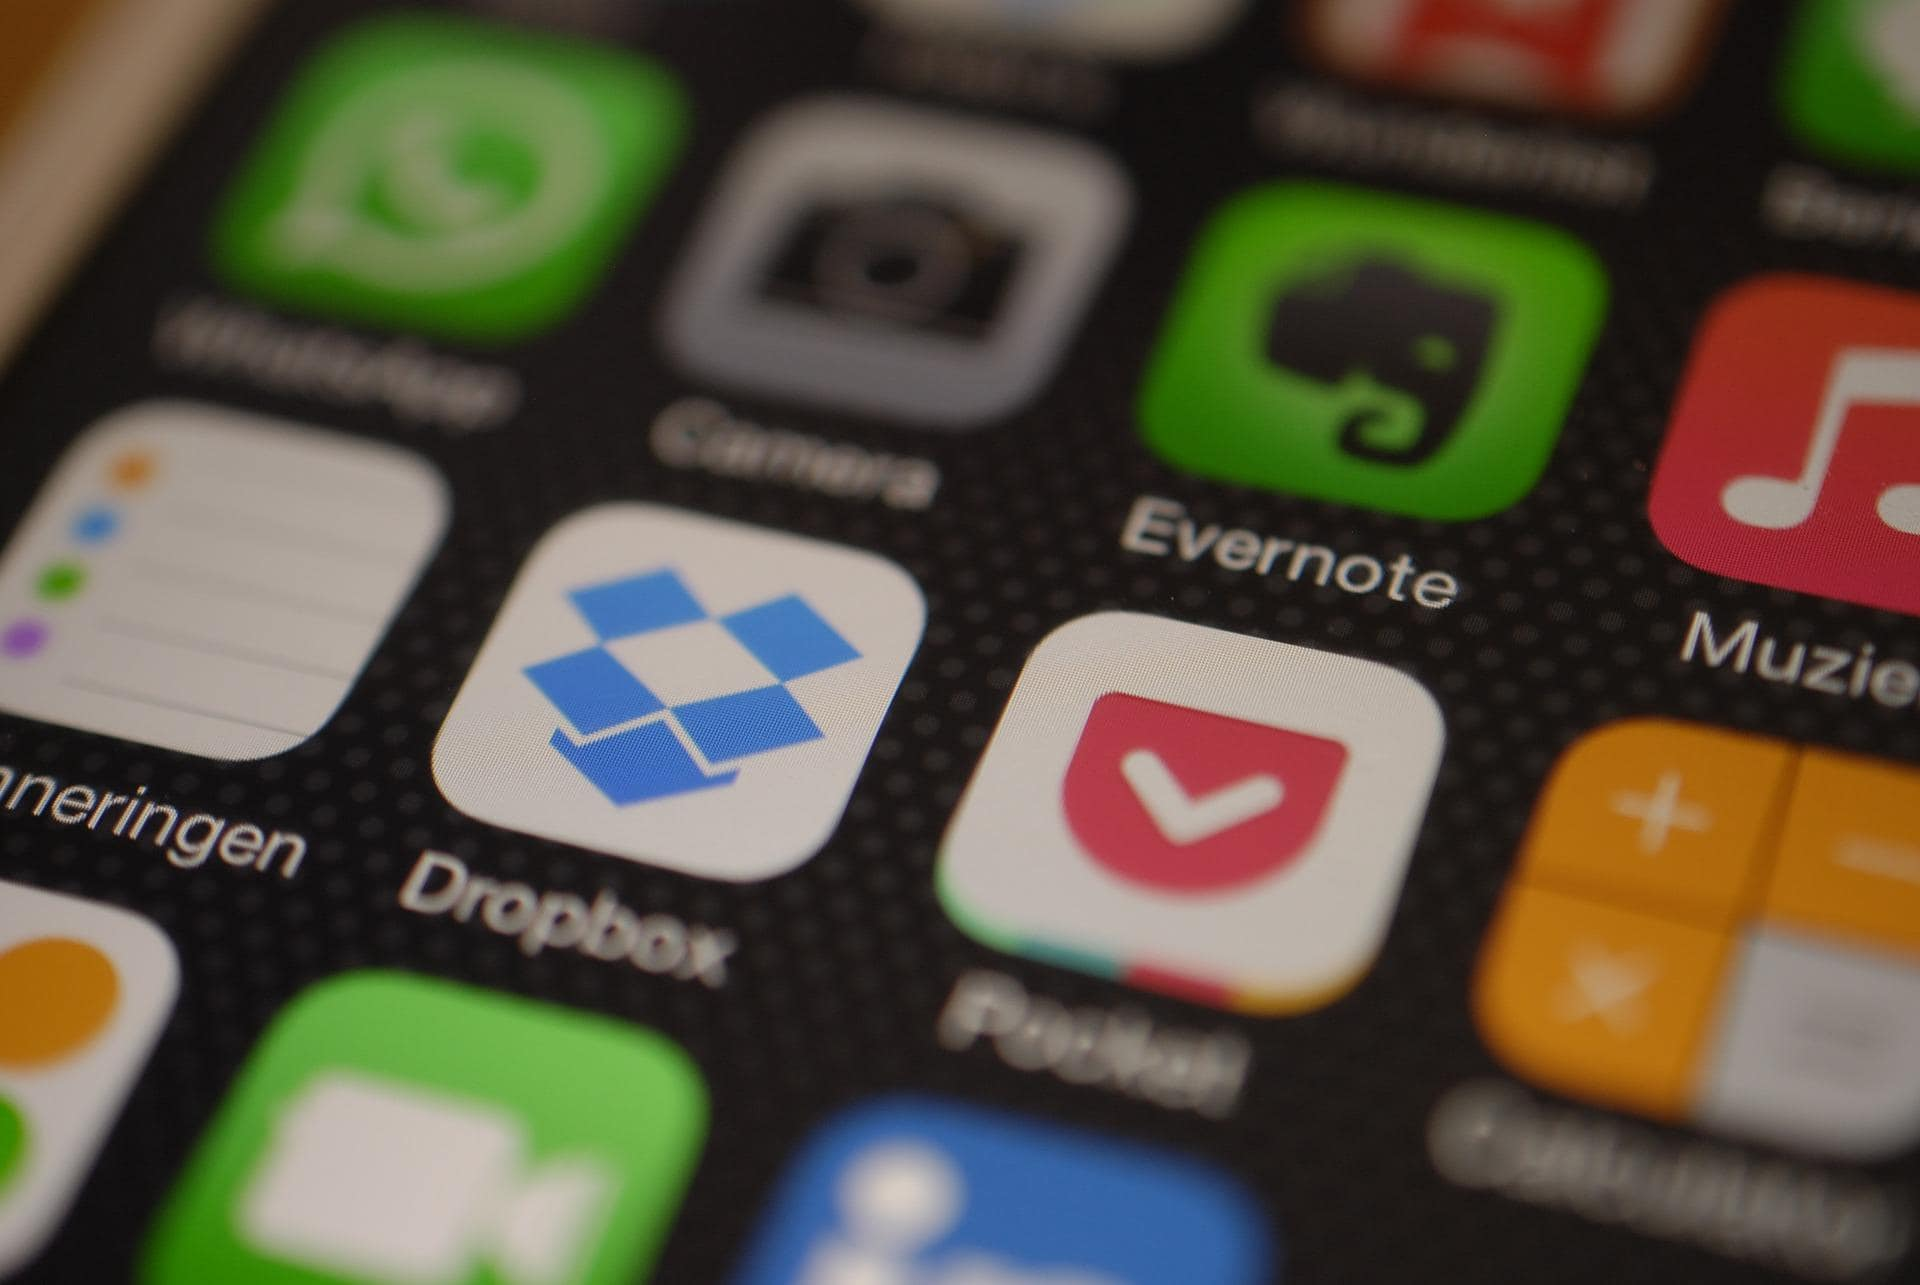 dropbox freemium business model